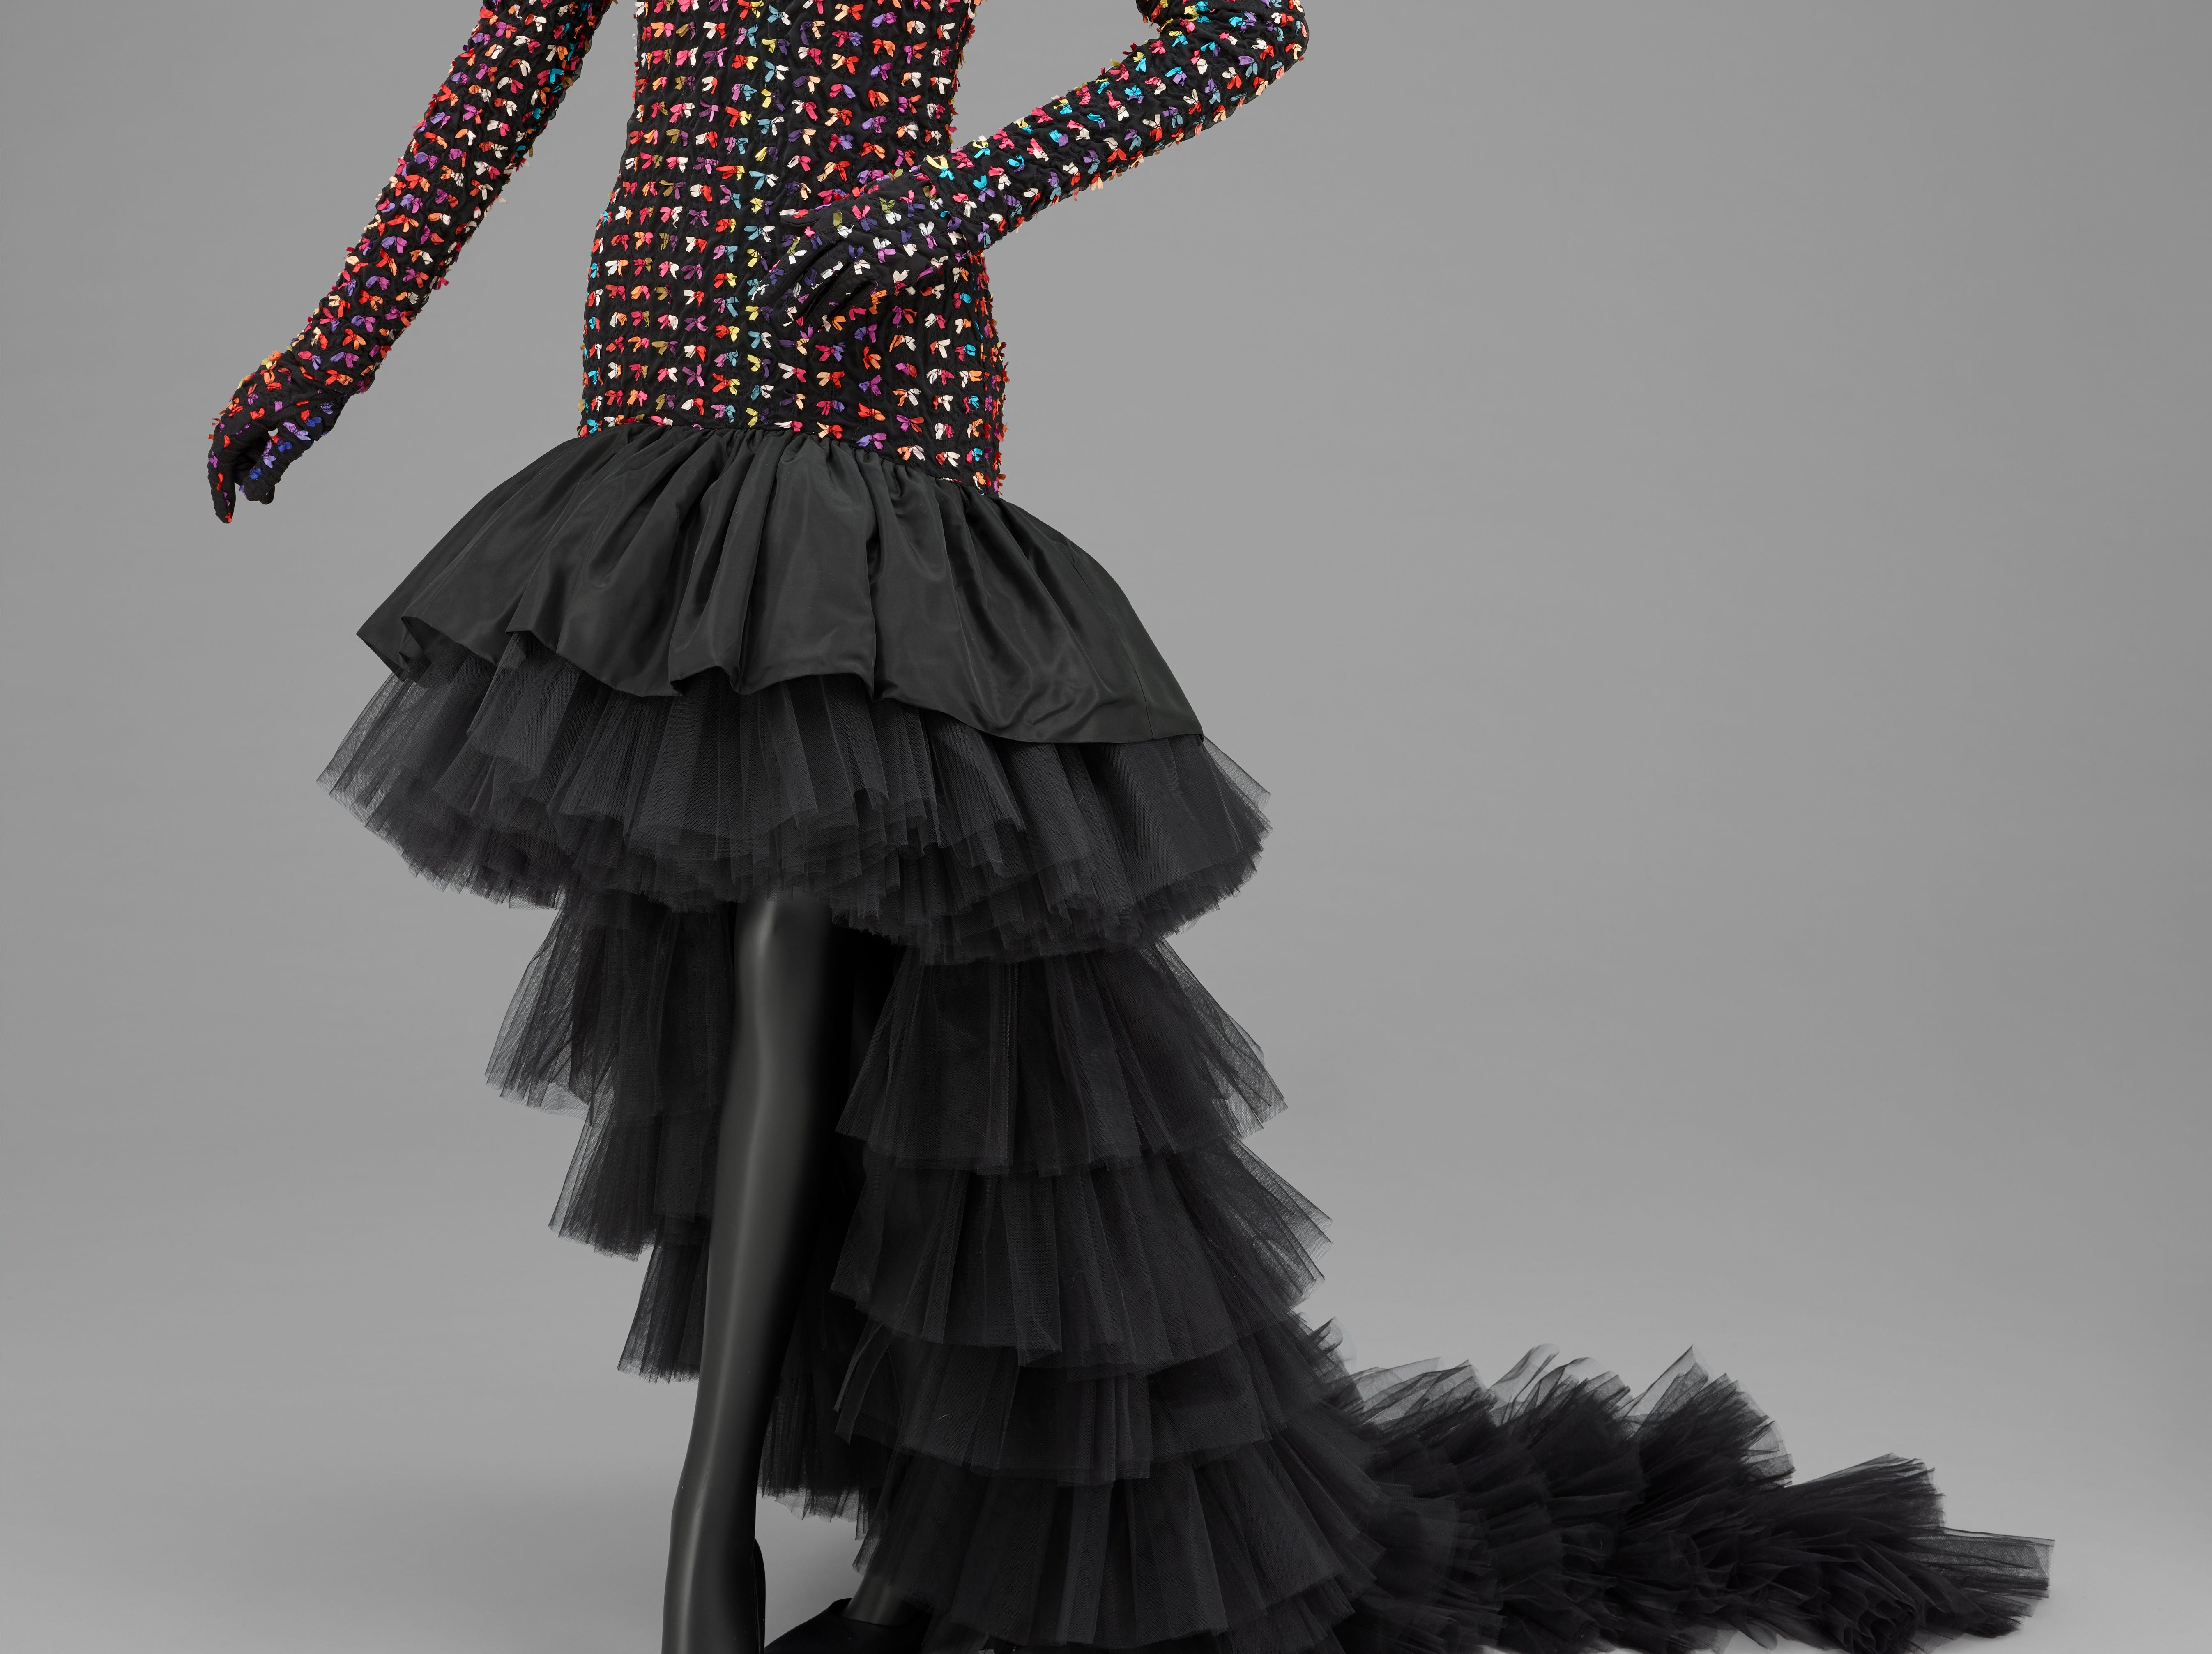 Designed by Patrick Kelly, 'Woman's Evening Dress and Two Pairs of Gloves' will be Fall/Winter 1988. Dress: Black nylon plain weave, machine embroidery over multicolored acetate plain weave ribbons, black triacetate taffeta and polyester net. Gloves: Black nylon plain weave, machine embroidery over multicolored acetate plain weave ribbons, black synthetic knit.